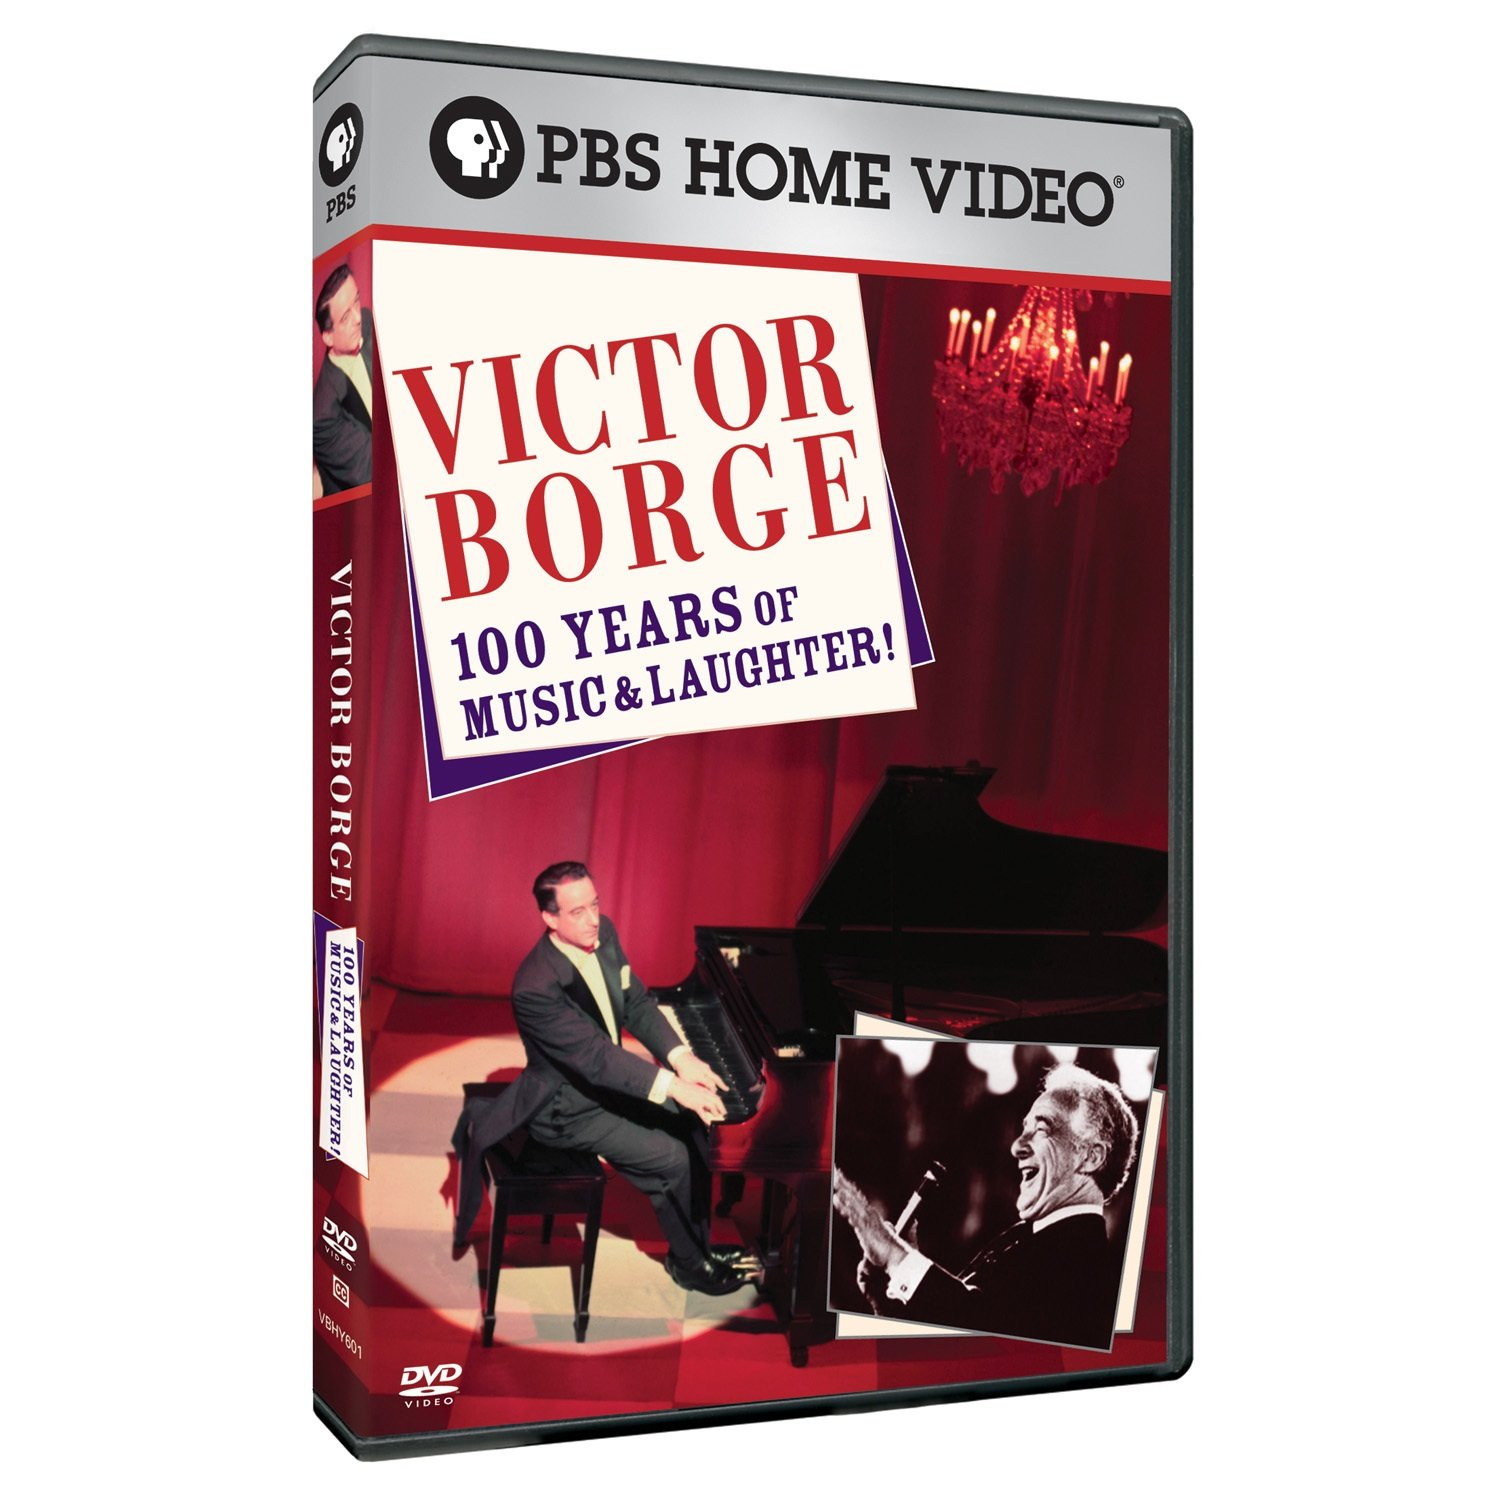 Victor Borge: 100 Years of Laughter by PBS